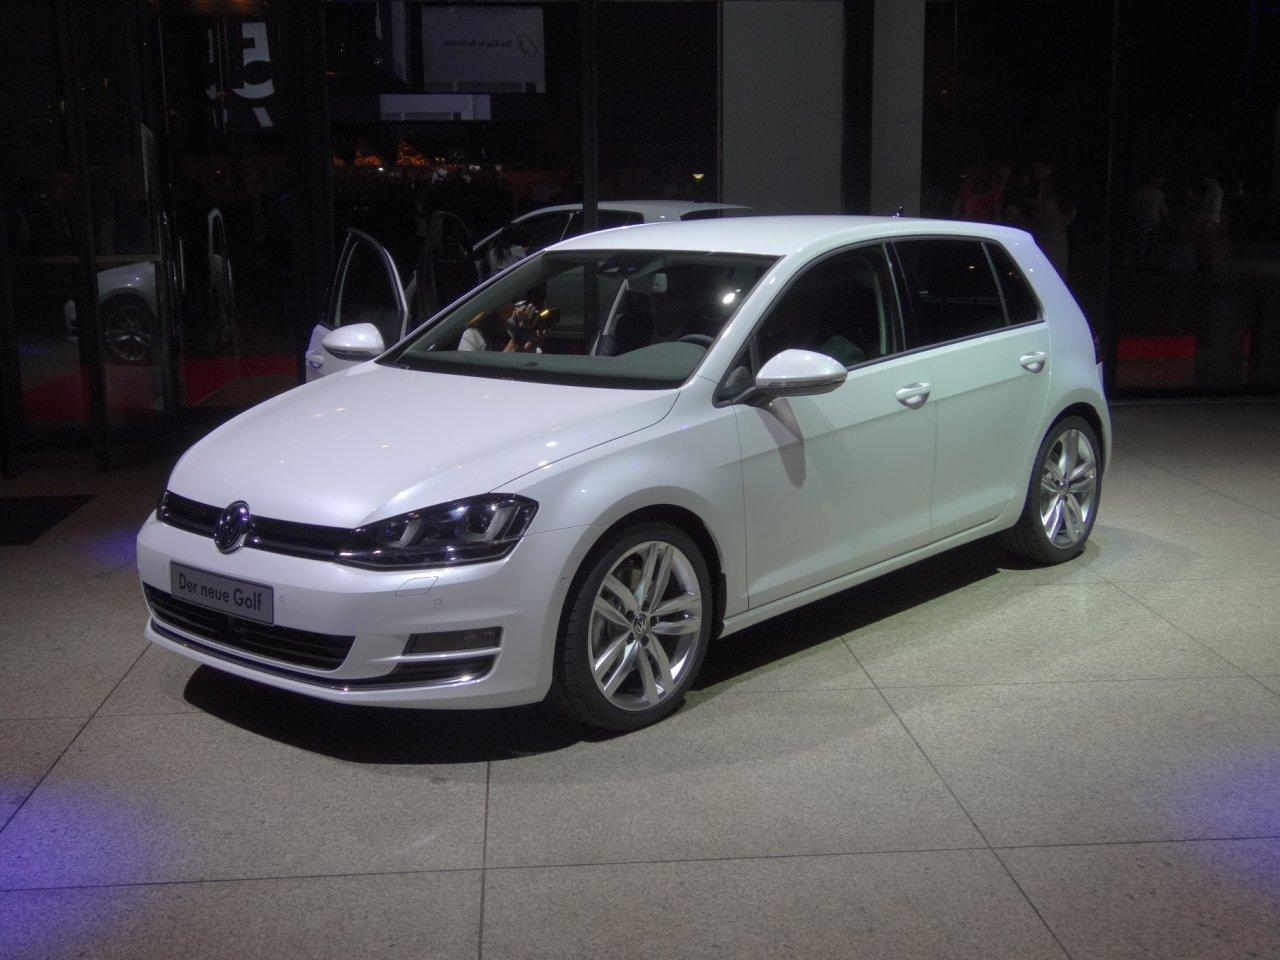 volkswagen golf 7 highline 1 4 tsi 125 ps led scheinw. Black Bedroom Furniture Sets. Home Design Ideas